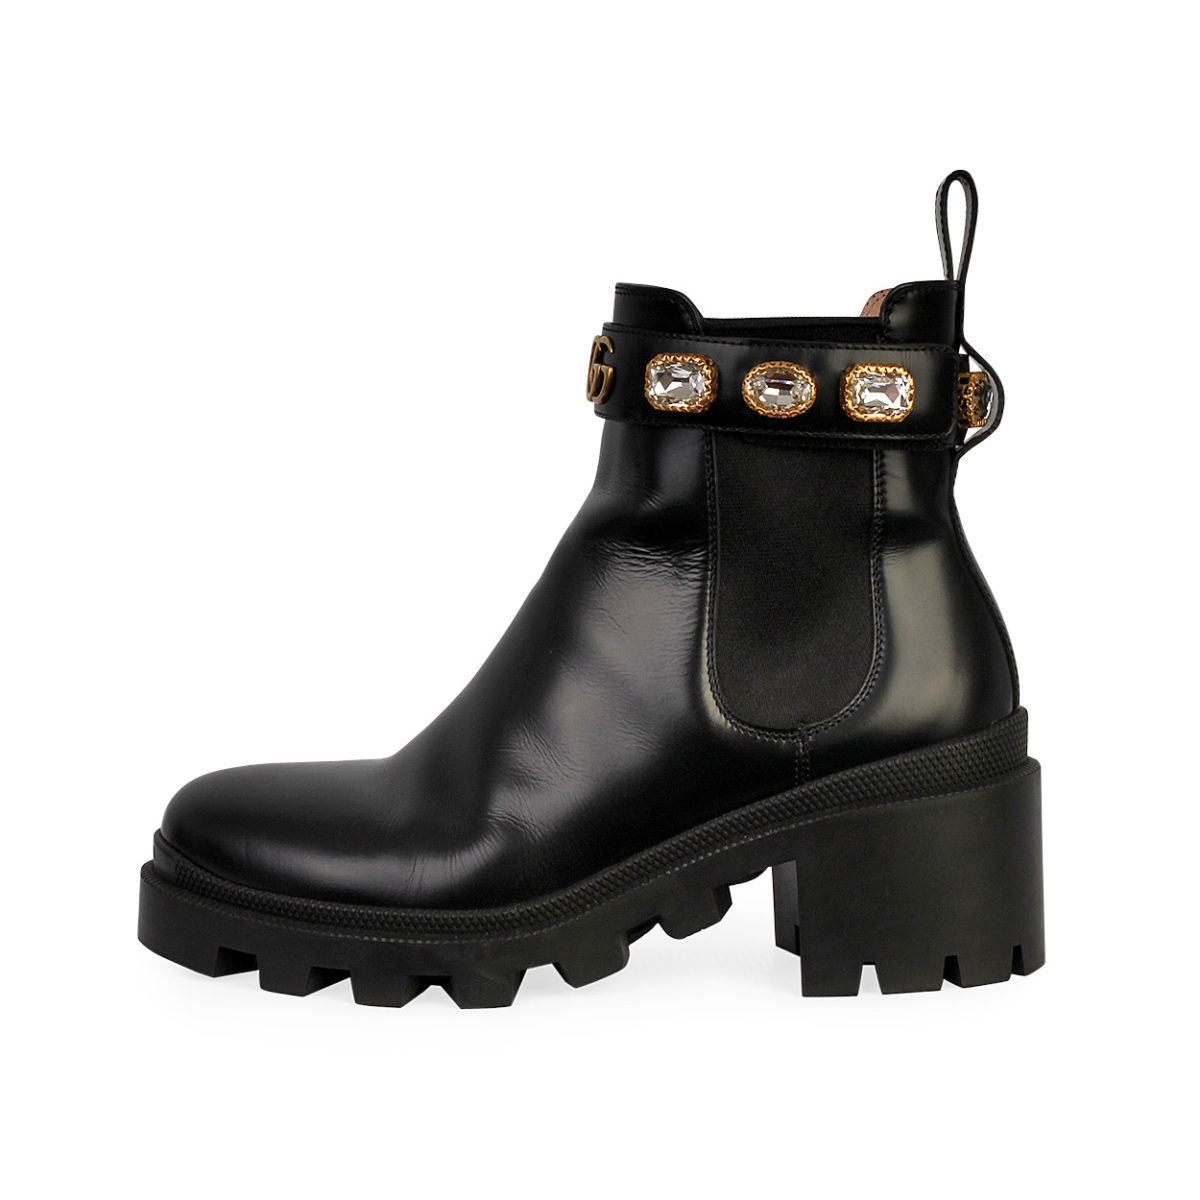 0b02daf5 GUCCI Leather Chelsea Crystals Ankle Boots Black - S: 37 (4)